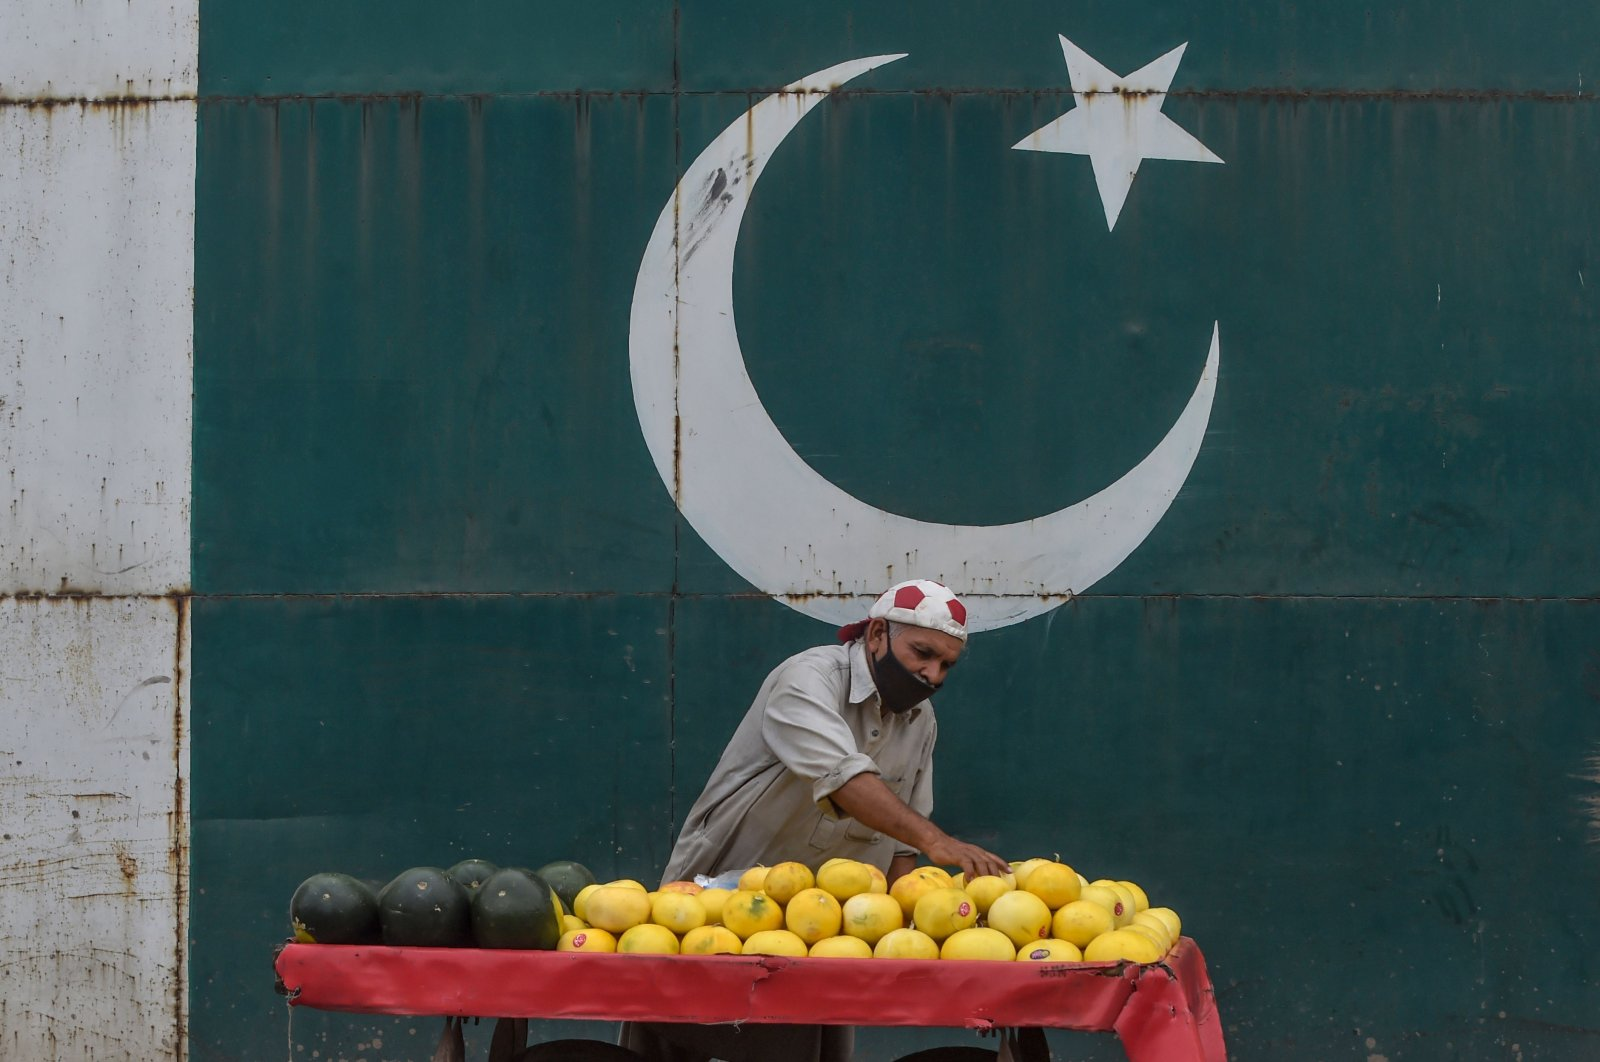 A fruit vendor wearing a facemask waits for customers under a painting of the national flag alongside a street during a government-imposed nationwide lockdown as a preventive measure against the coronavirus, in Lahore, Thursday, April 9, 2020. (AFP)